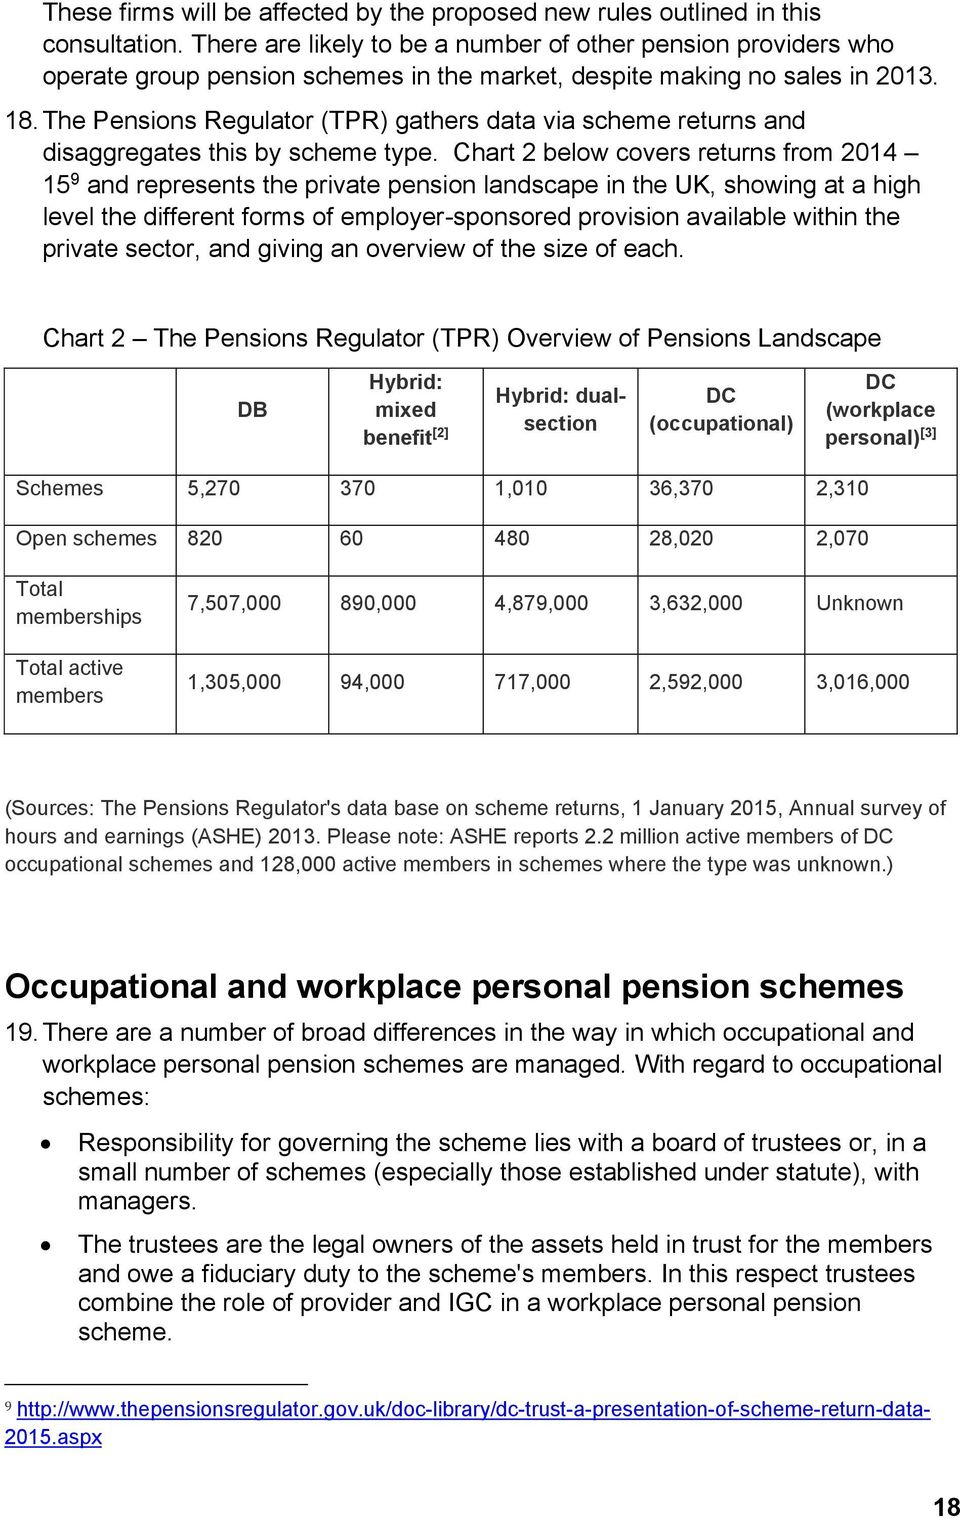 The Pensions Regulator (TPR) gathers data via scheme returns and disaggregates this by scheme type.